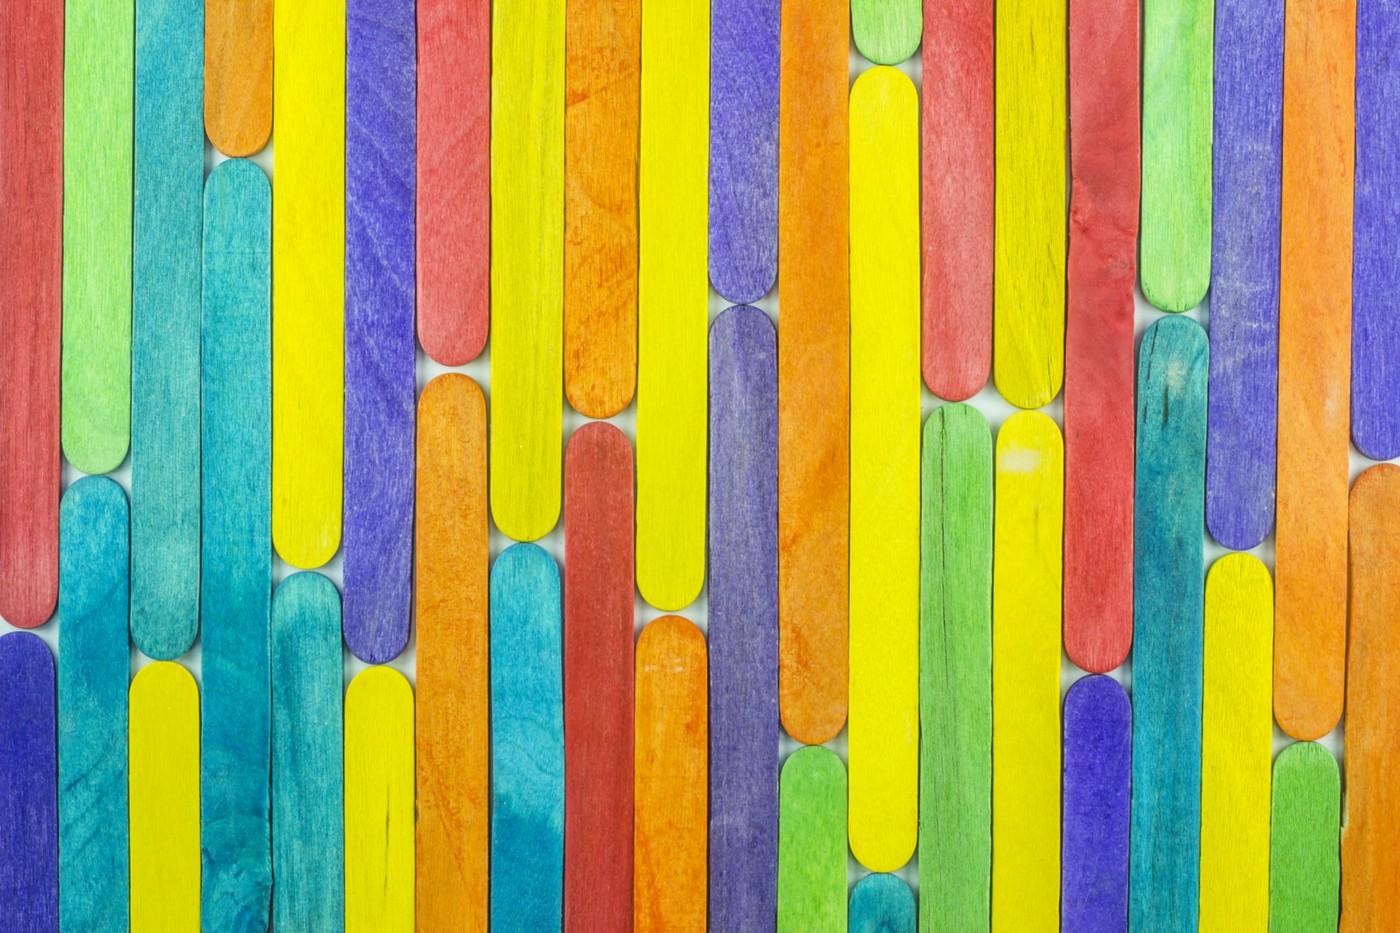 A photo of colorful popsicle sticks lined up to look like a wallpaper.